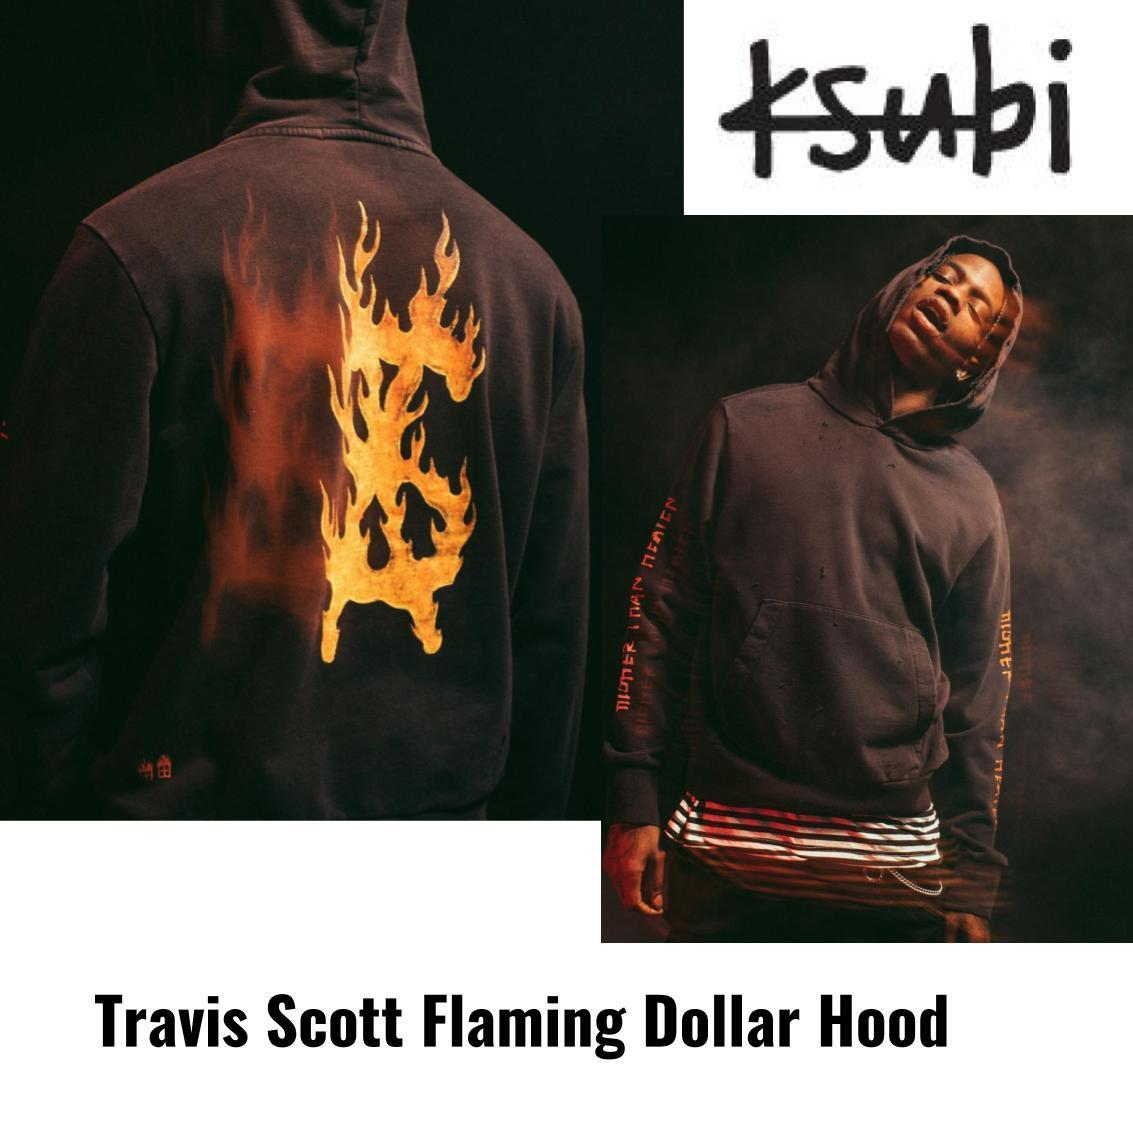 KSUBI×Travis Scott★限定コラボ パーカーFlaming Dollar Hood